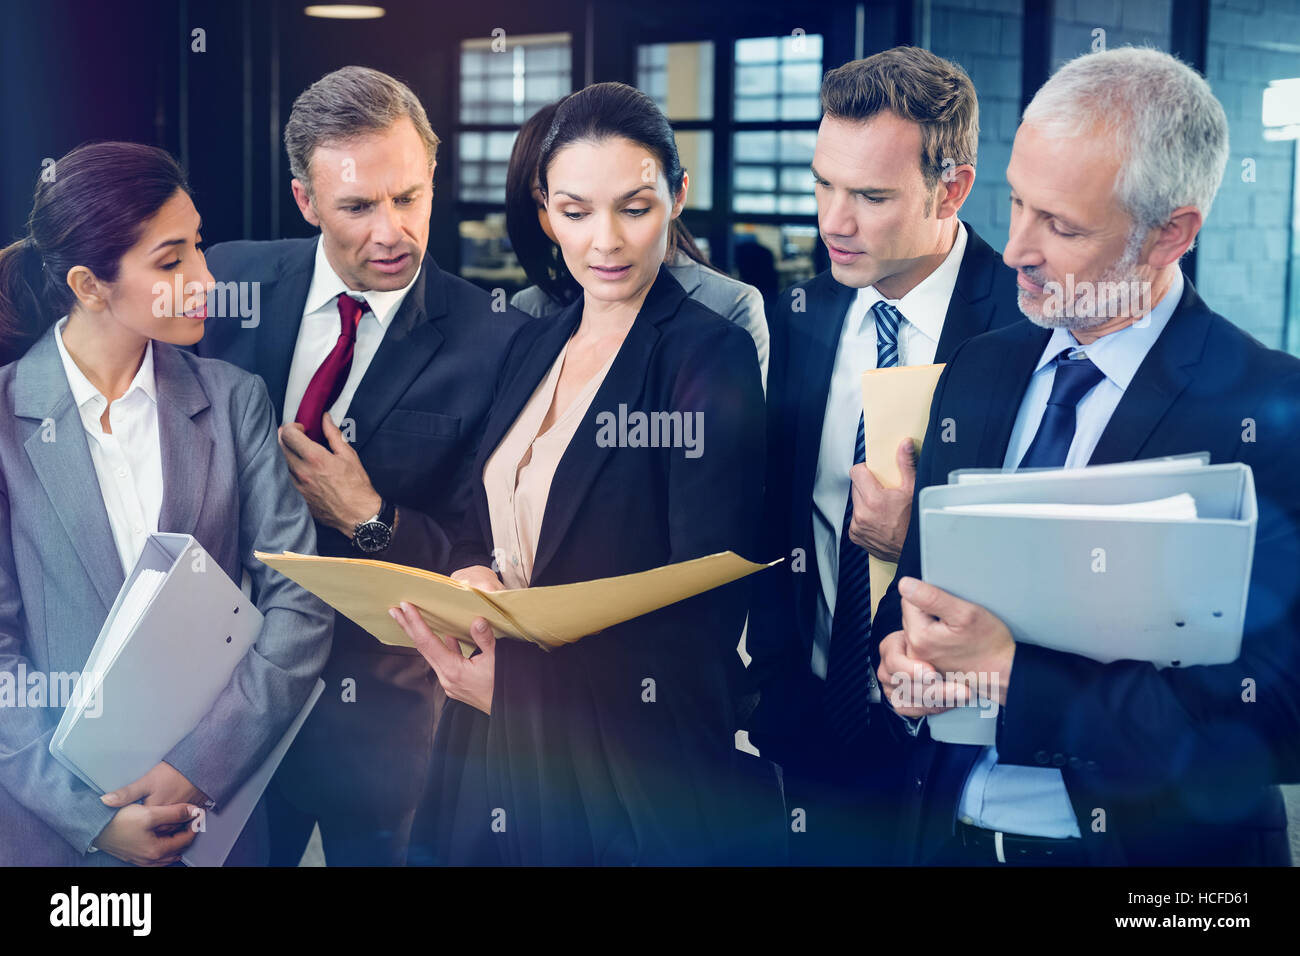 Lawyer looking at documents and interacting with businesspeople - Stock Image